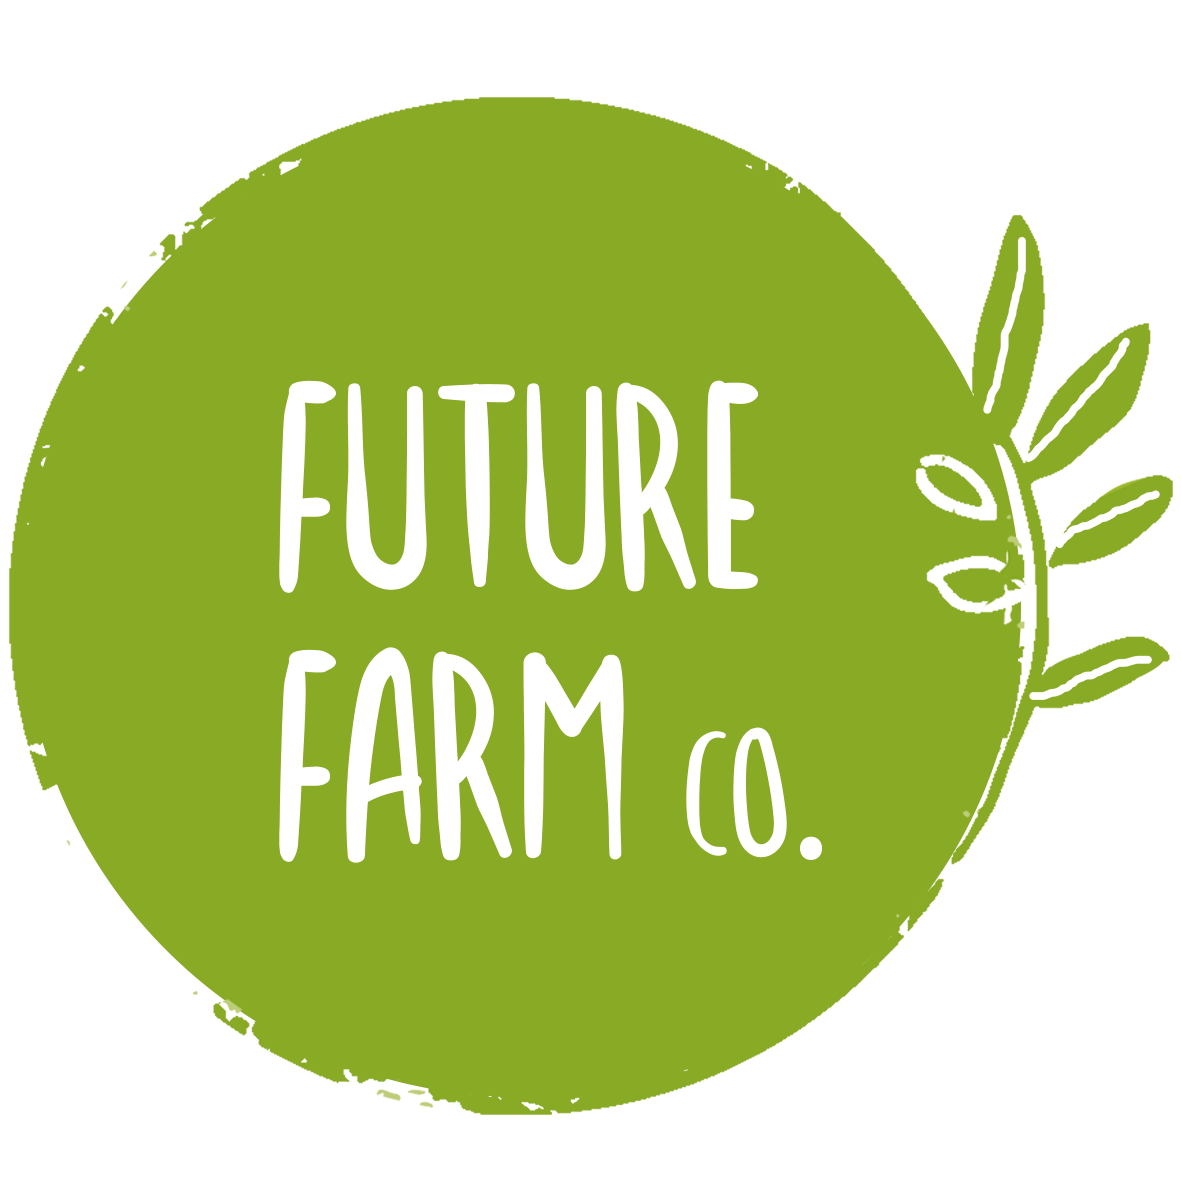 The Future Farm Co.